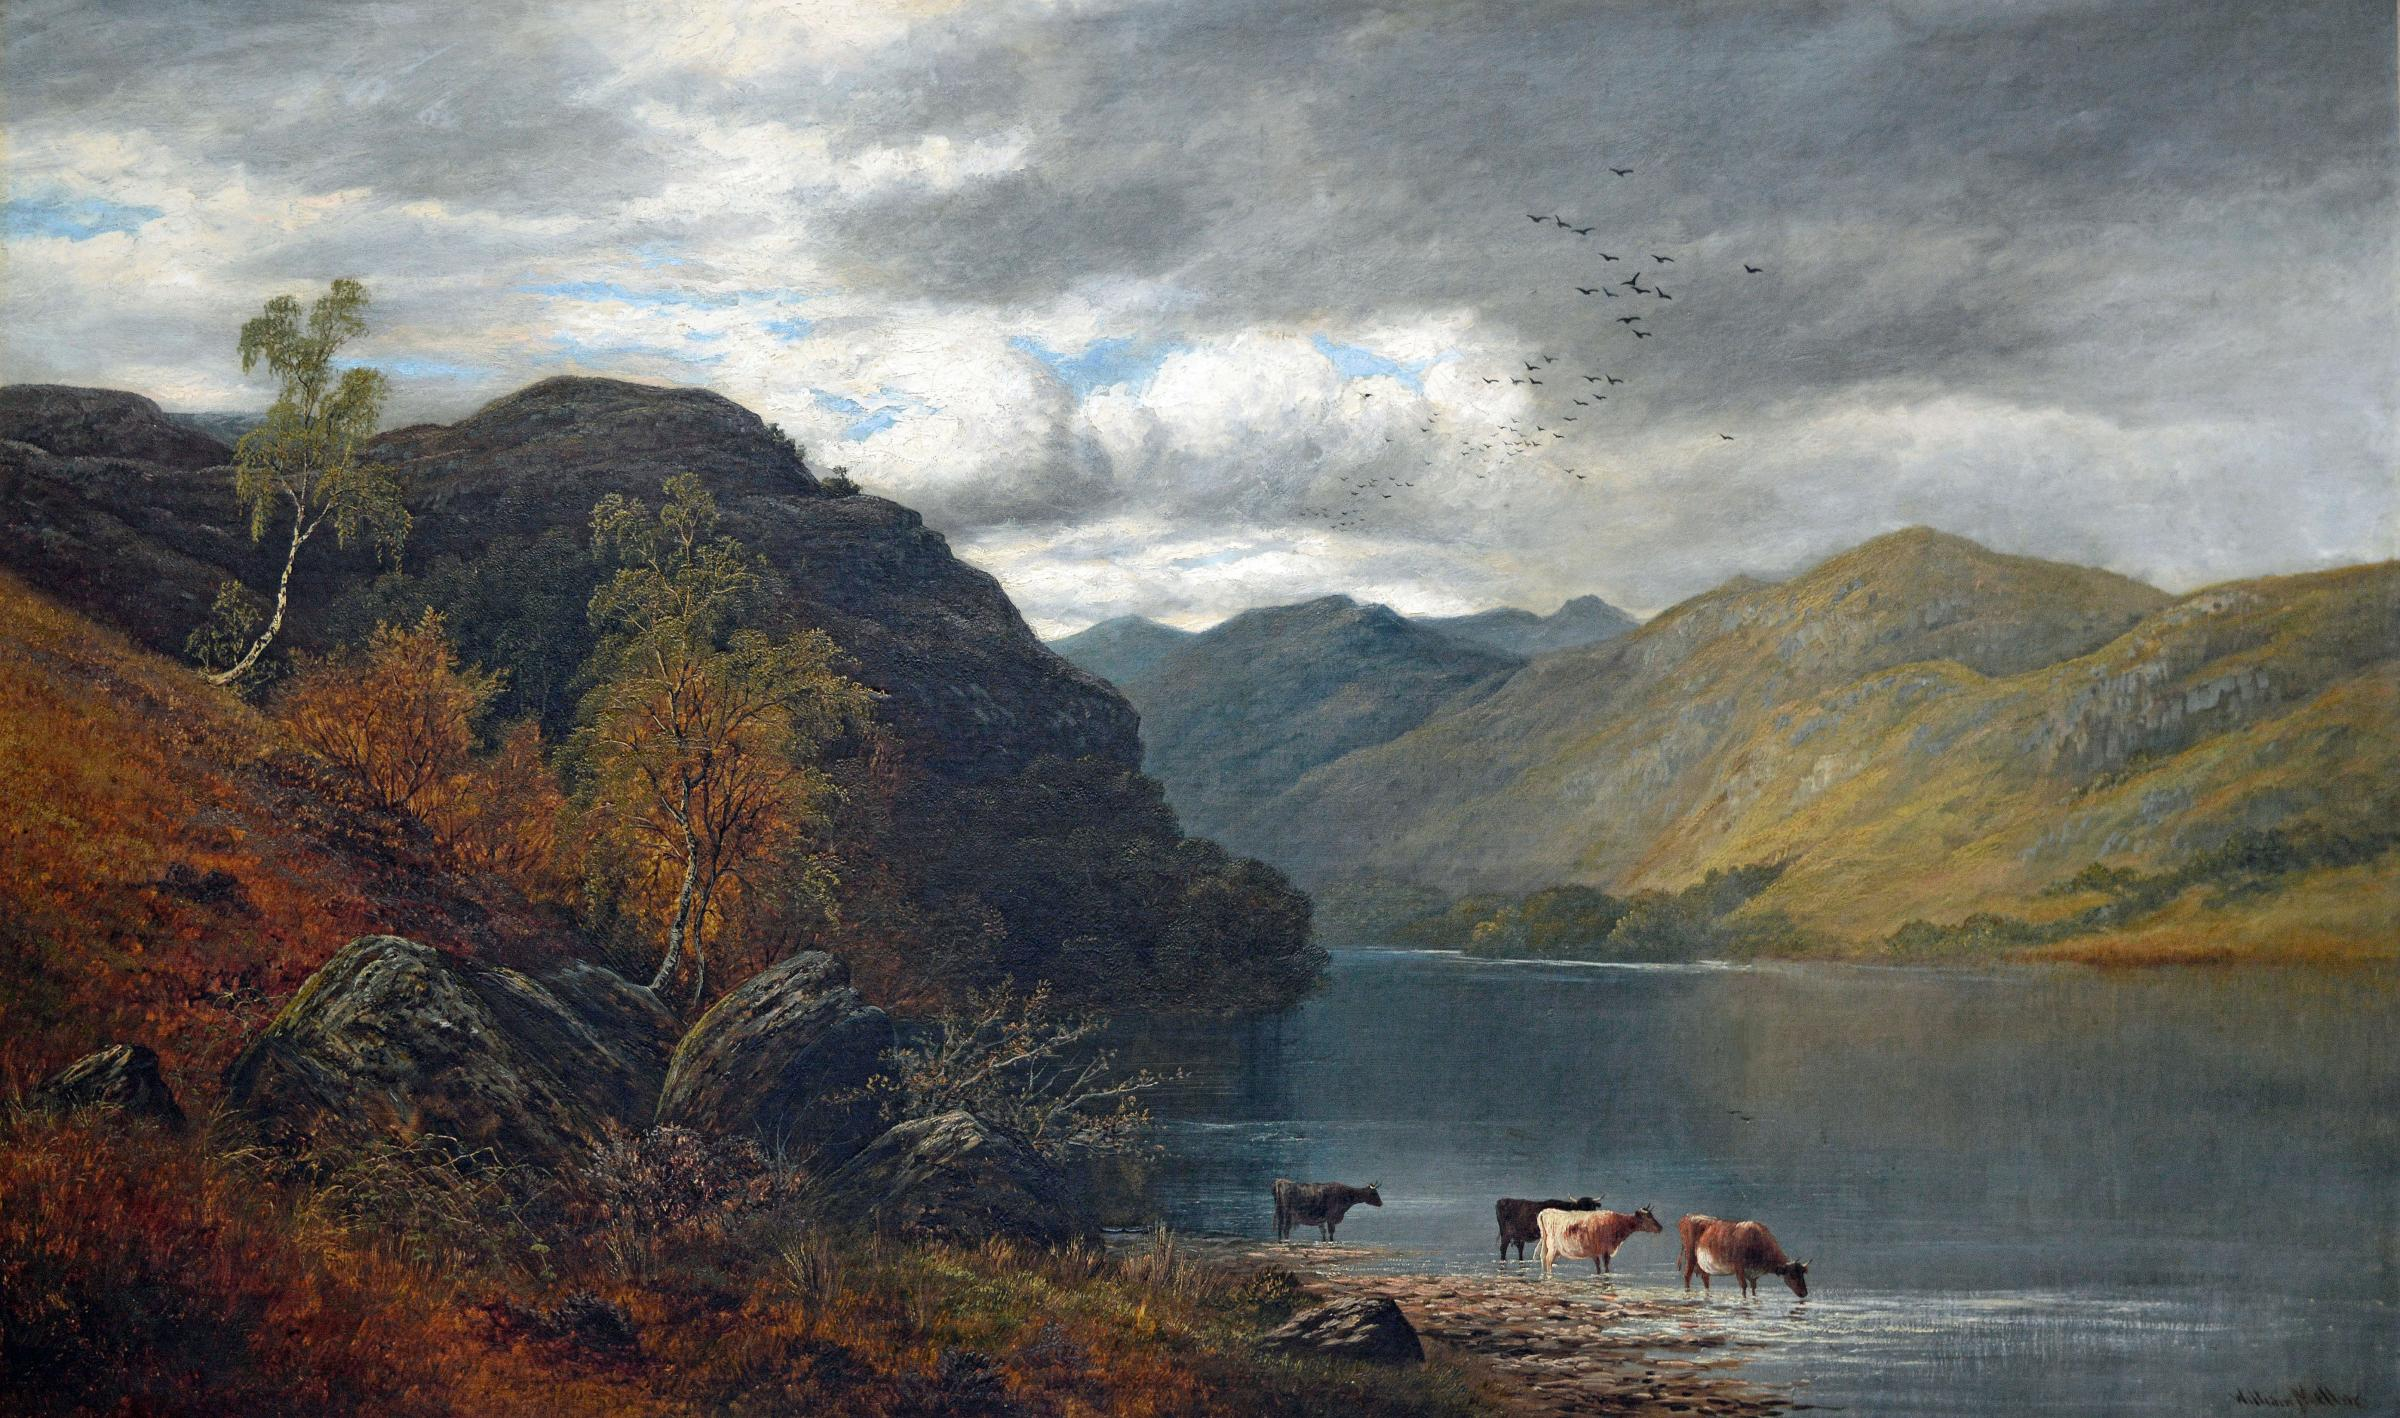 A large oil painting by William Mellor of Derwentwater, Cumbria, signed and dated c1900 will be available from Carnes Fine Art.